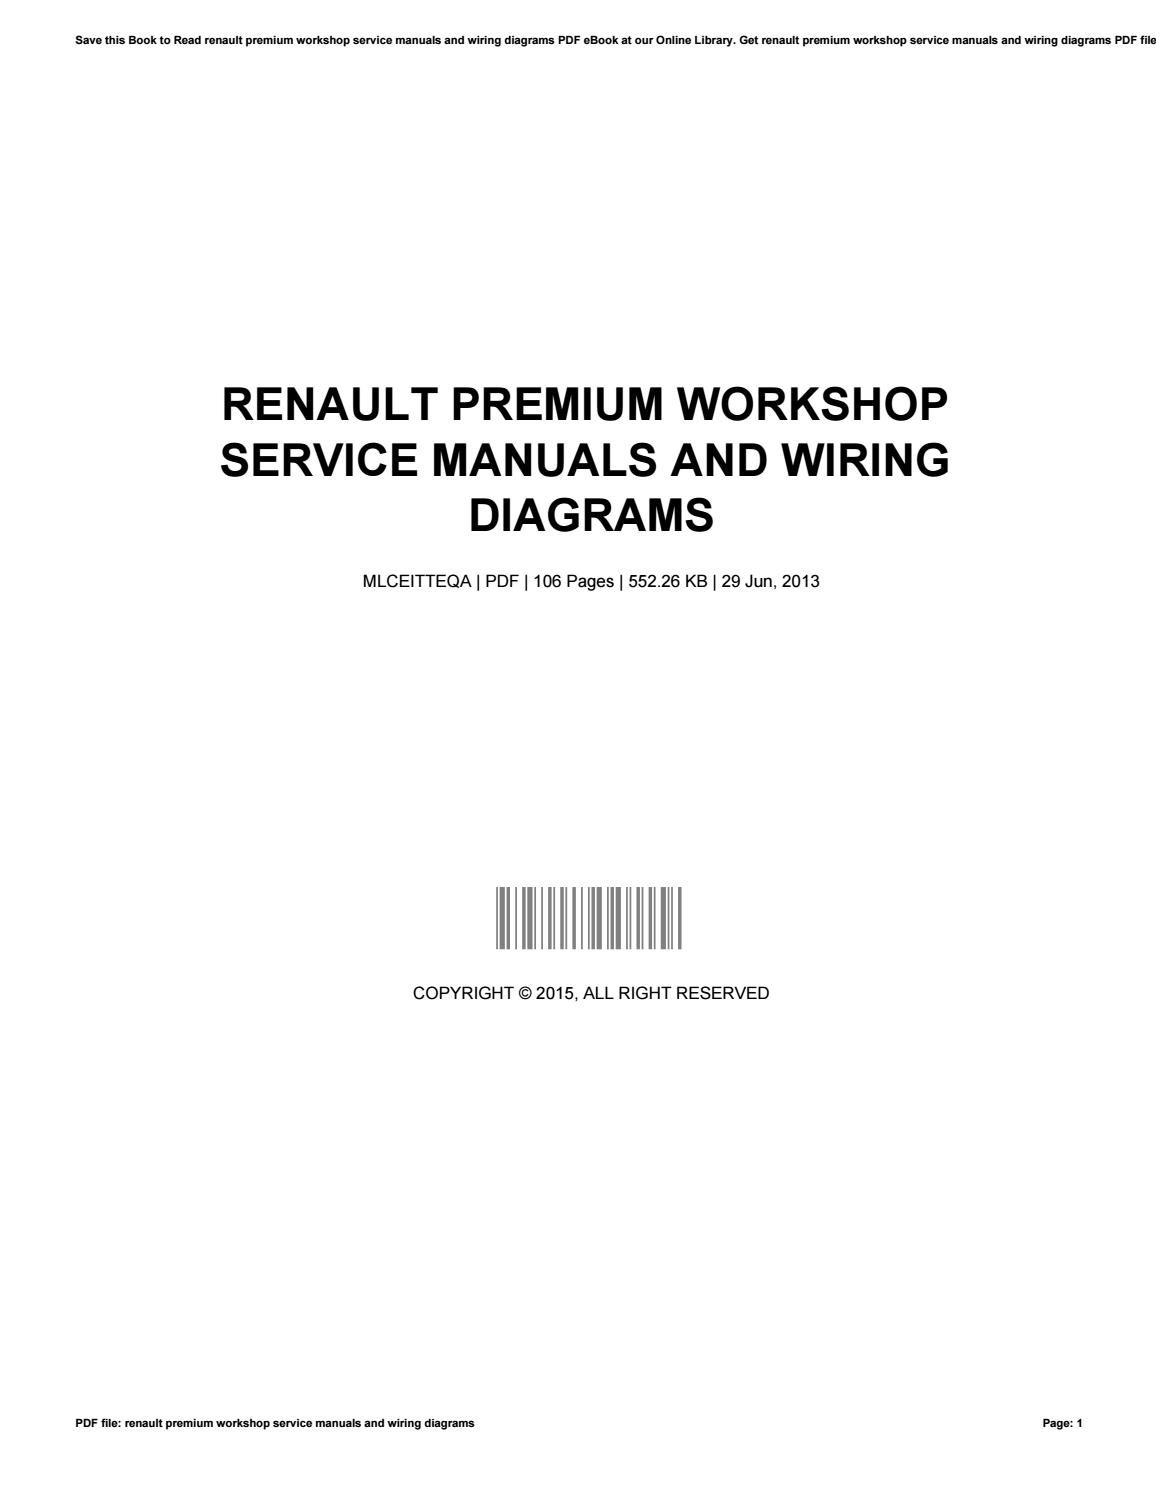 Renault Premium Workshop Service Manuals And Wiring